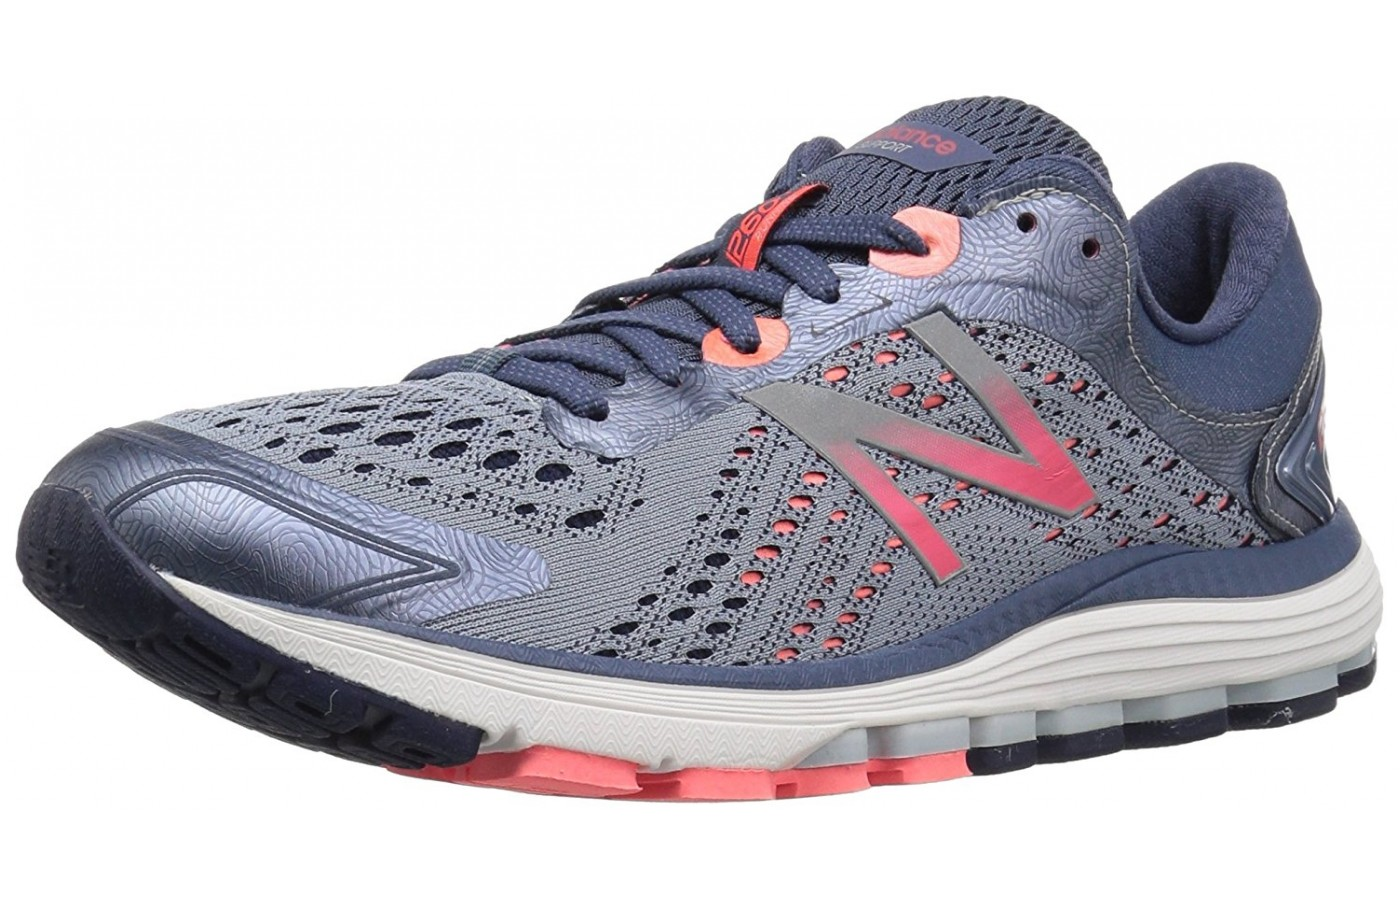 quality design 572e0 f6225 New Balance 1260 V7